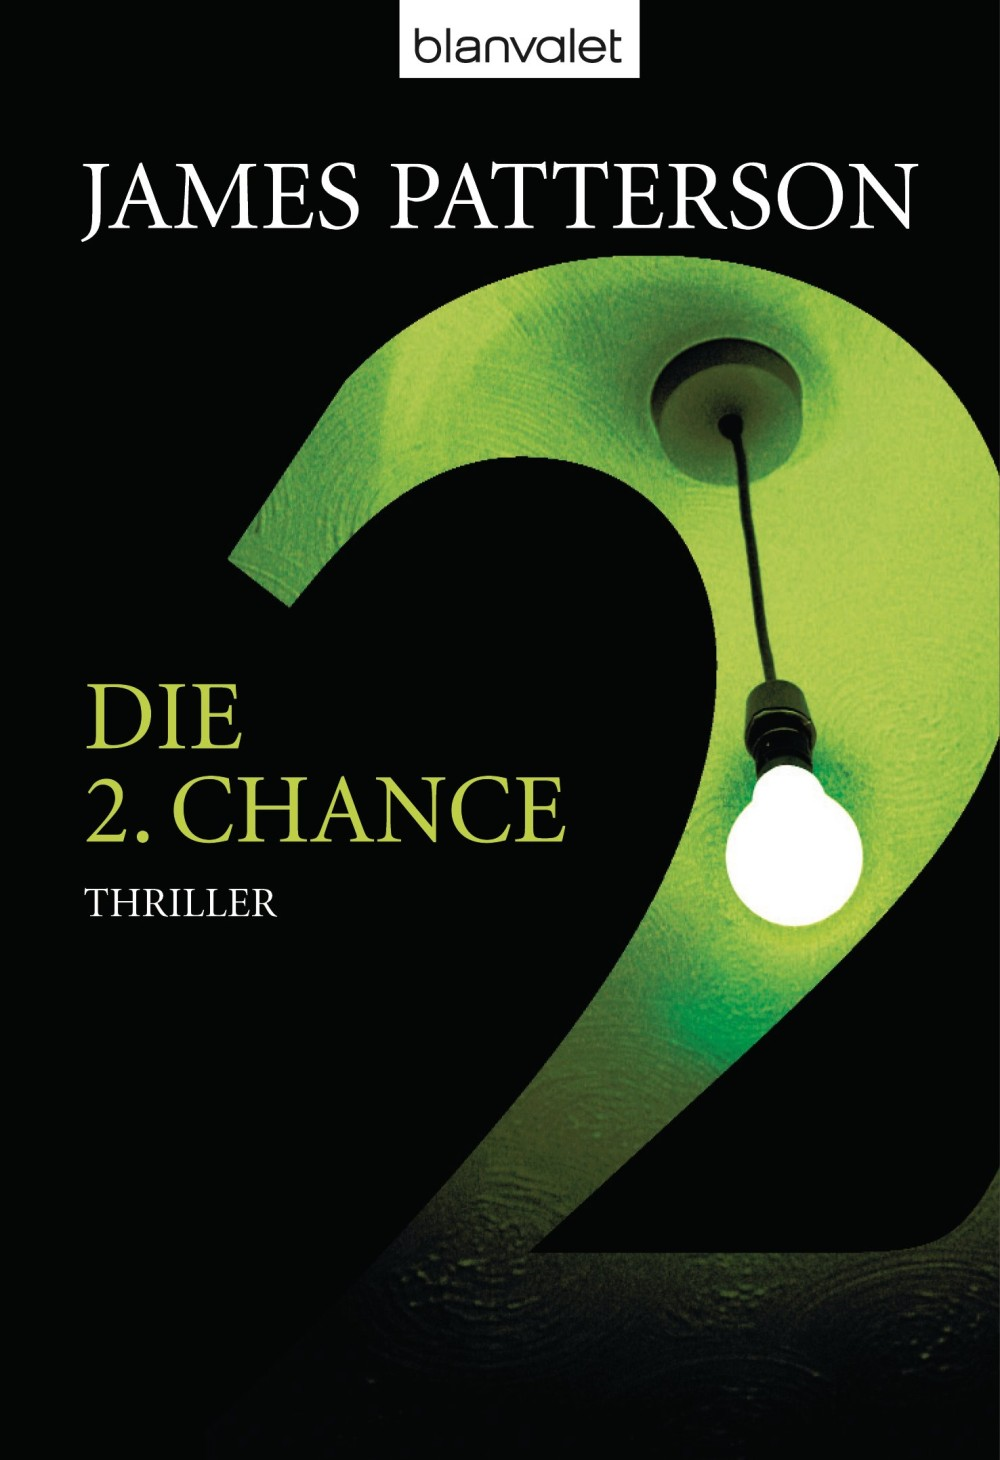 Die 2. Chance - Women's Murder Club -